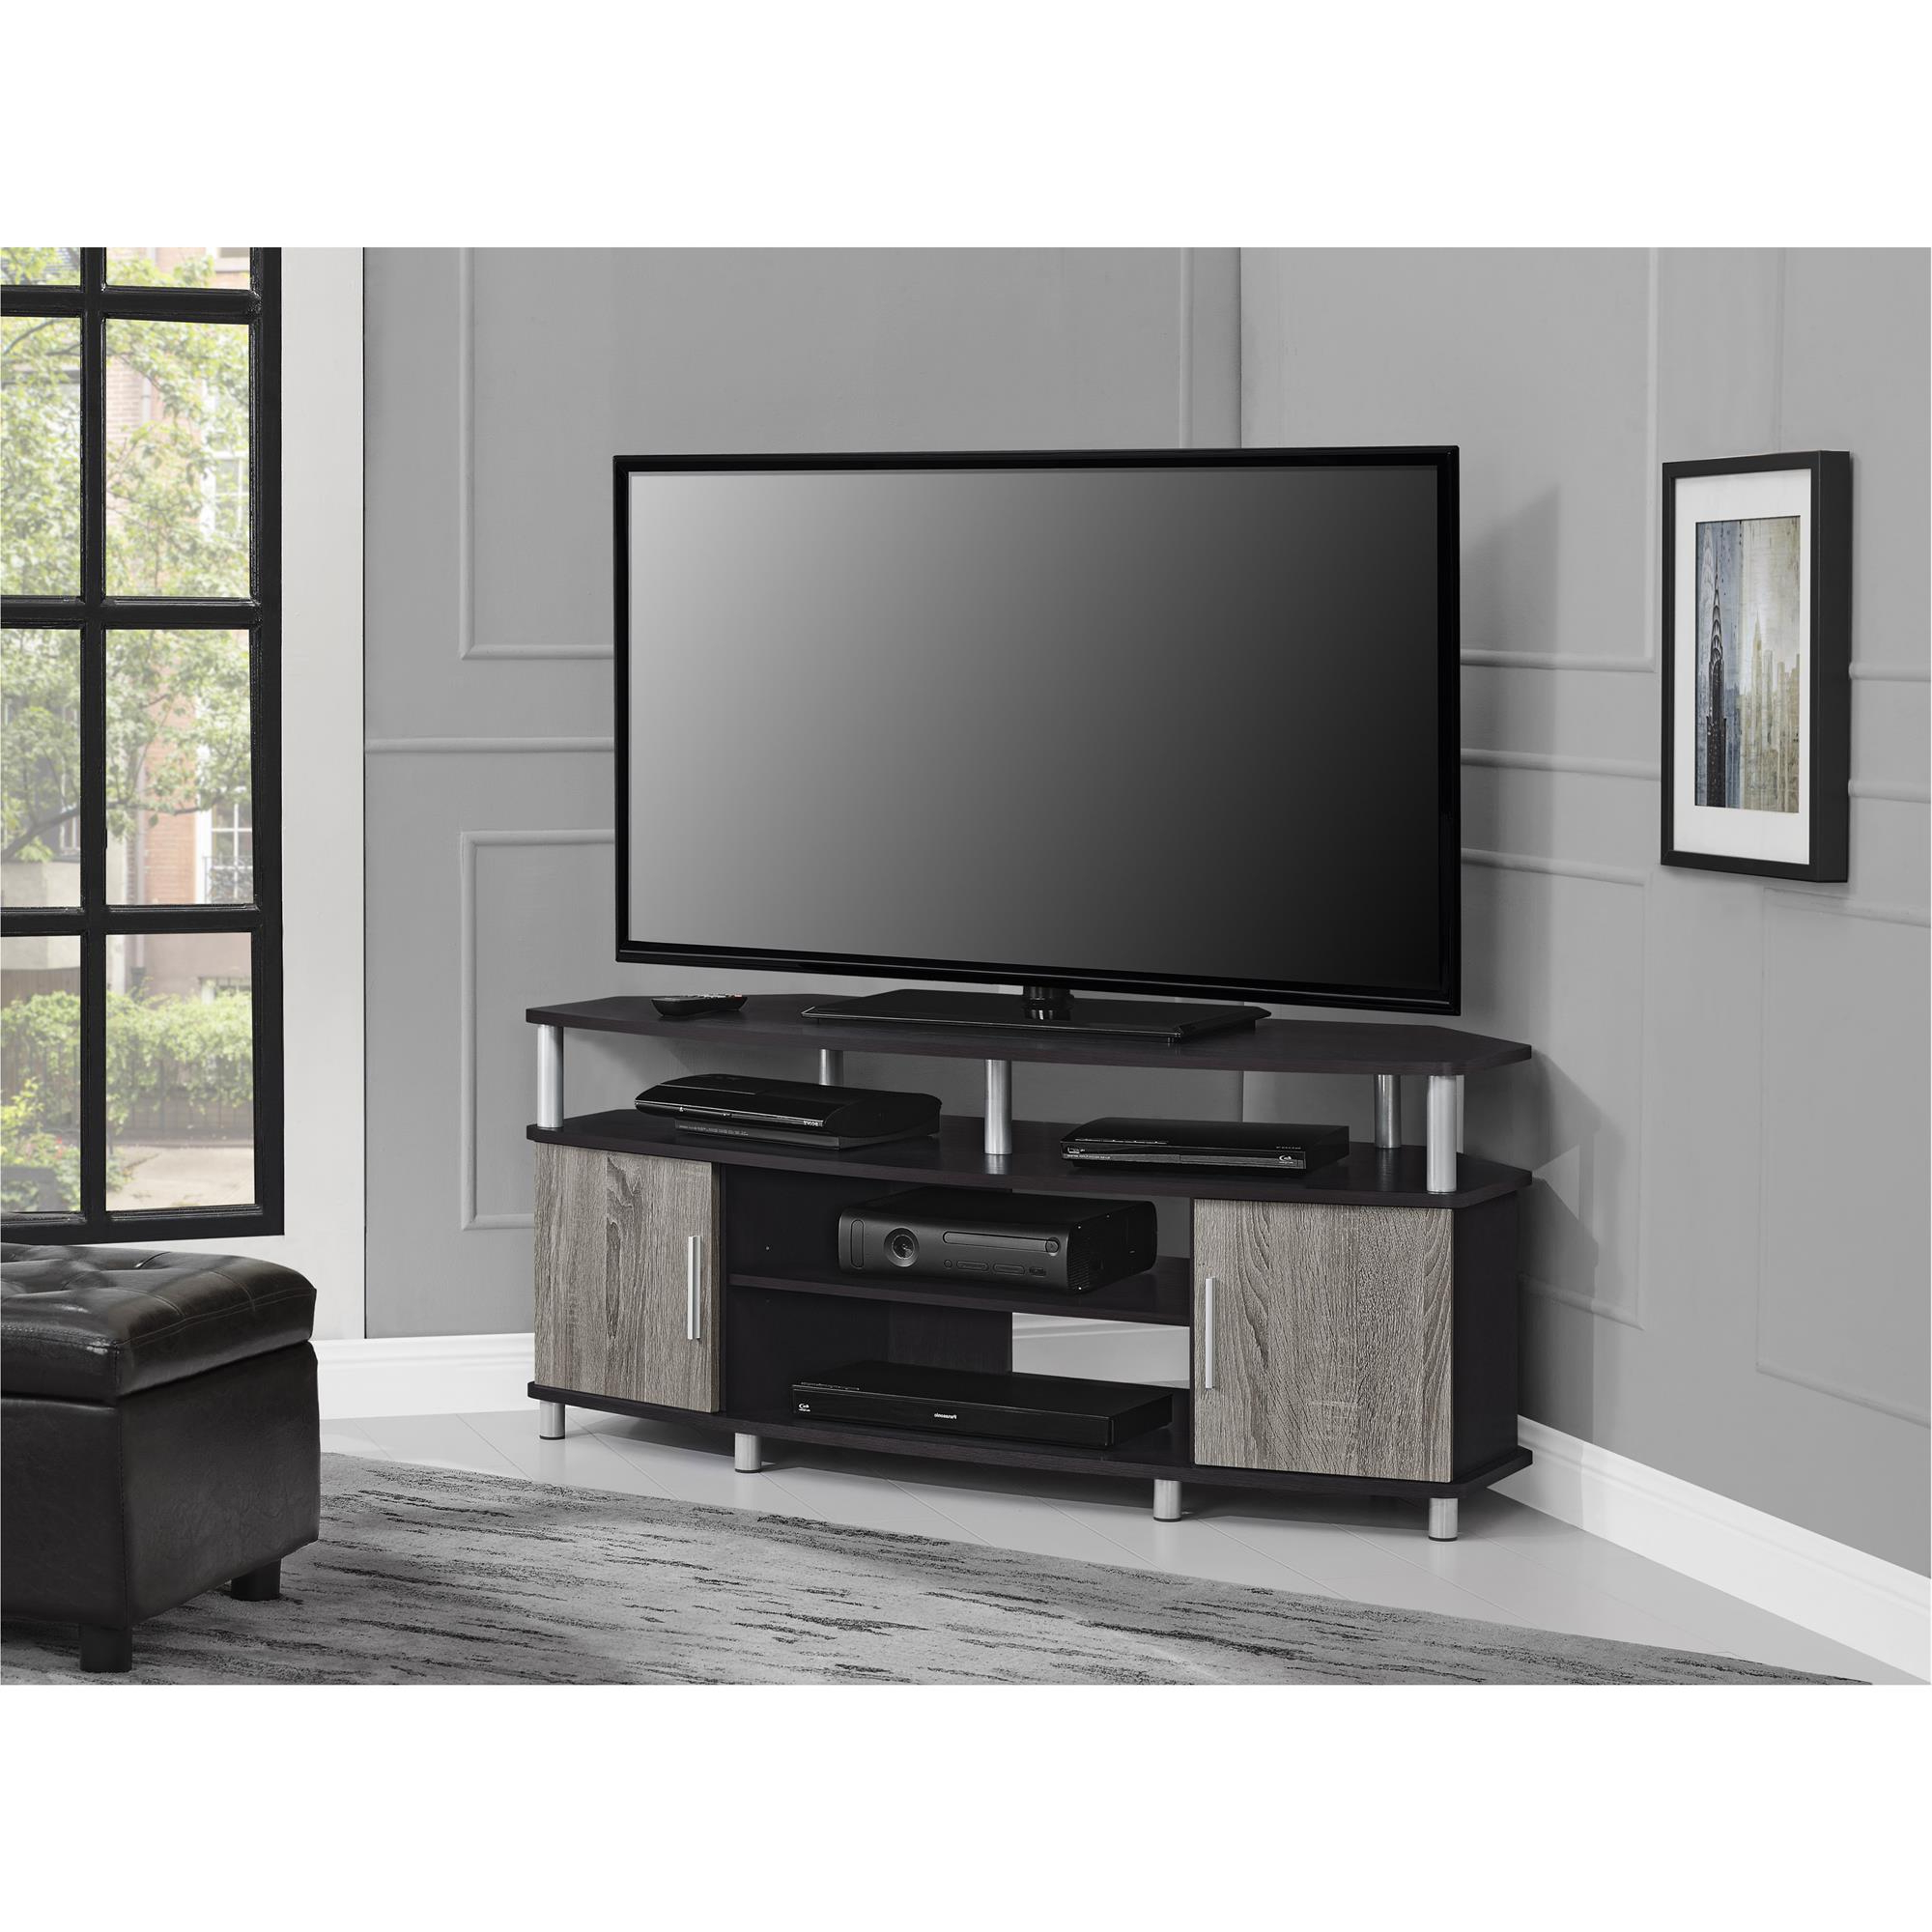 """Corner Tv Stands For 55 Inch Tv Throughout Best And Newest Ameriwood Home Carson Corner Tv Stand For Tvs Up To 50"""" Wide, Black (View 2 of 20)"""